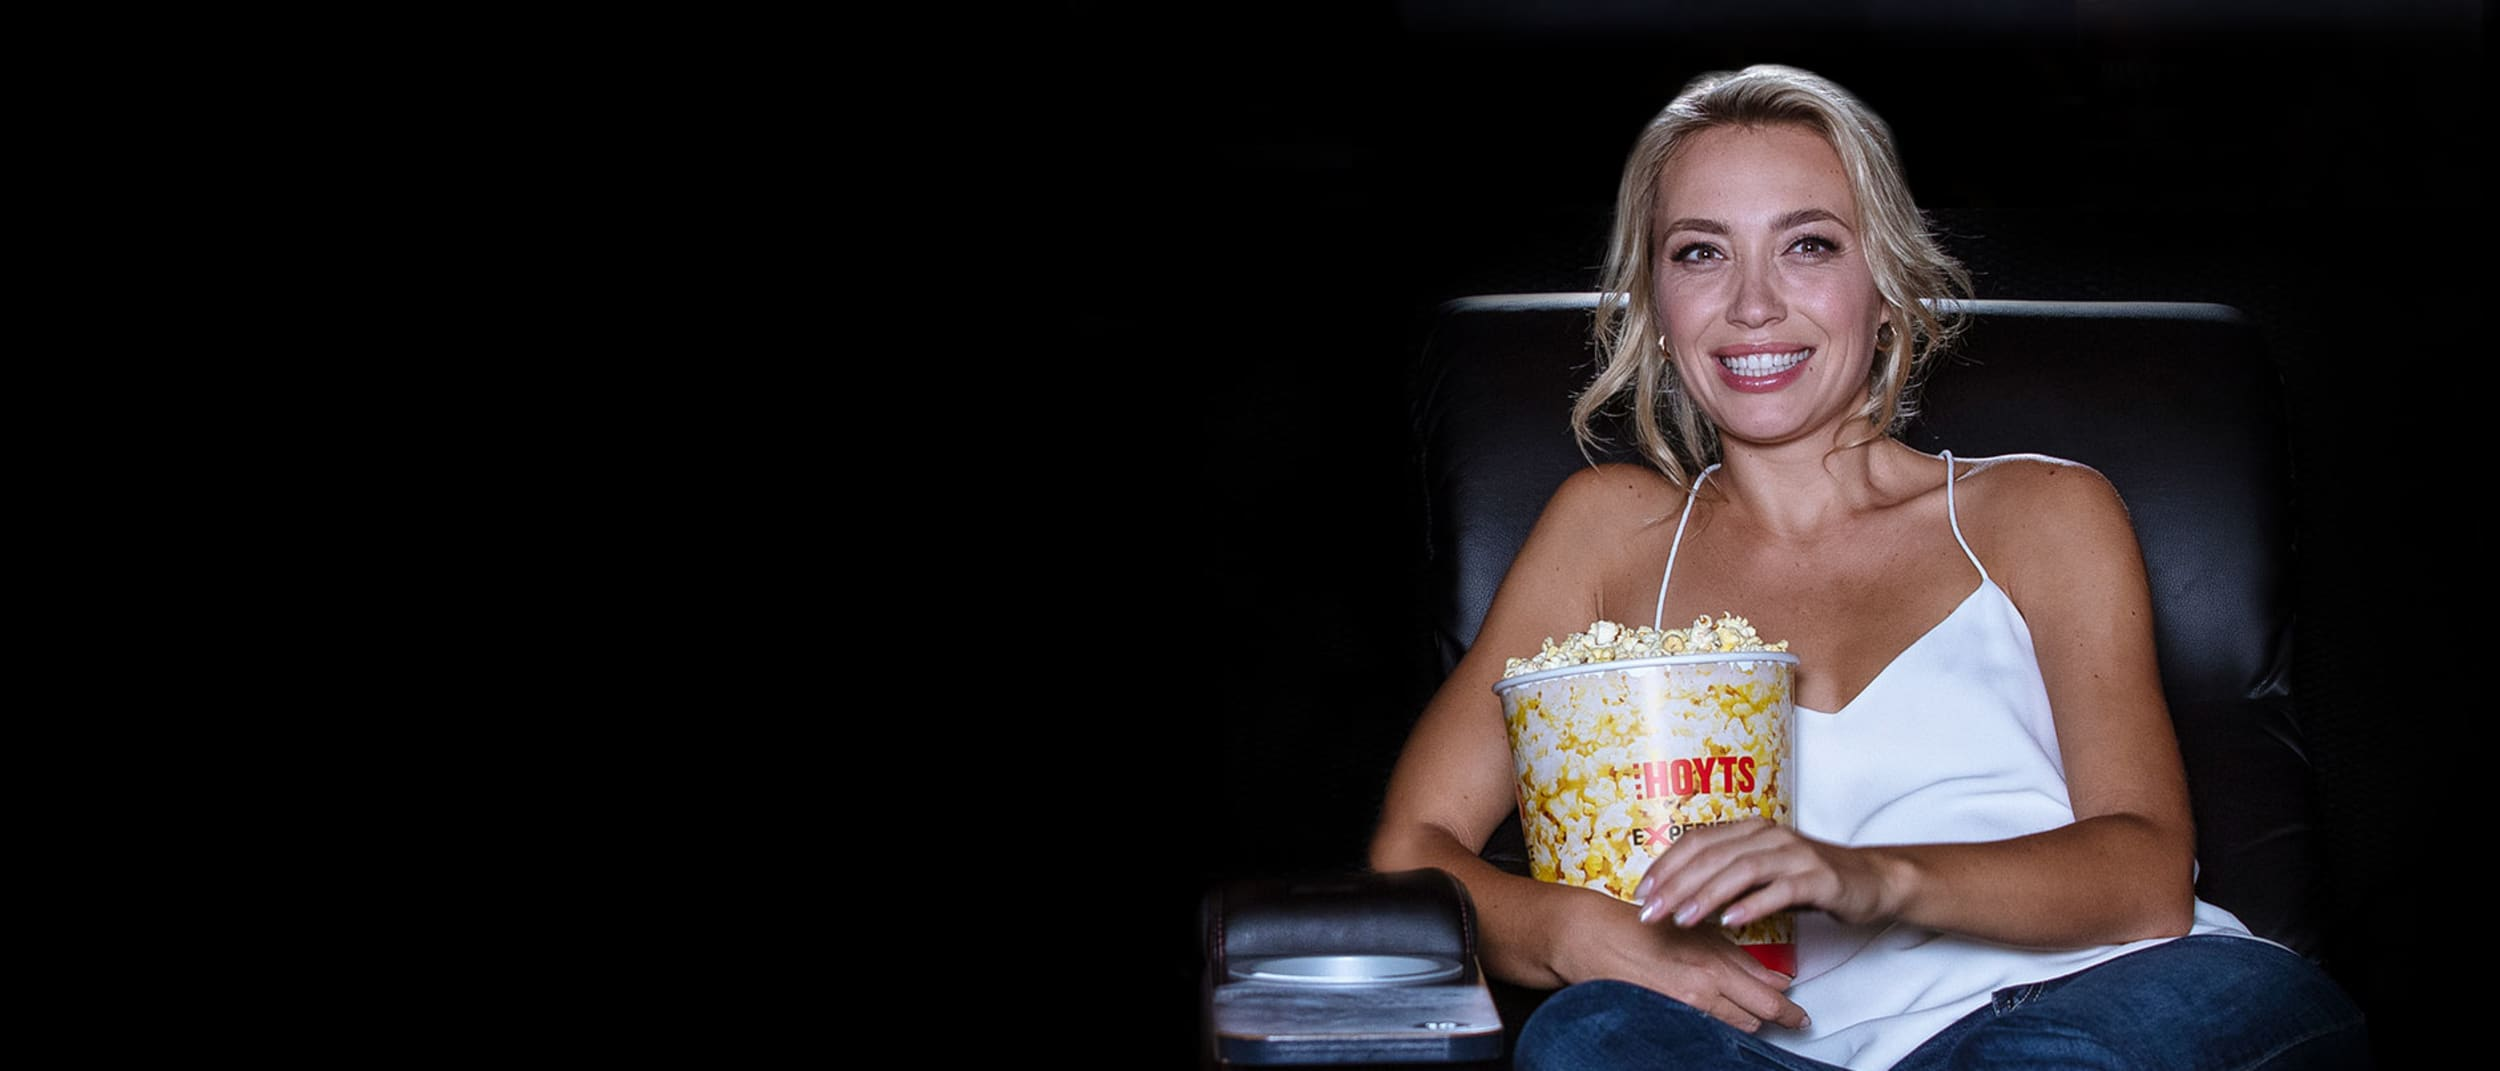 Host your own private screening at HOYTS